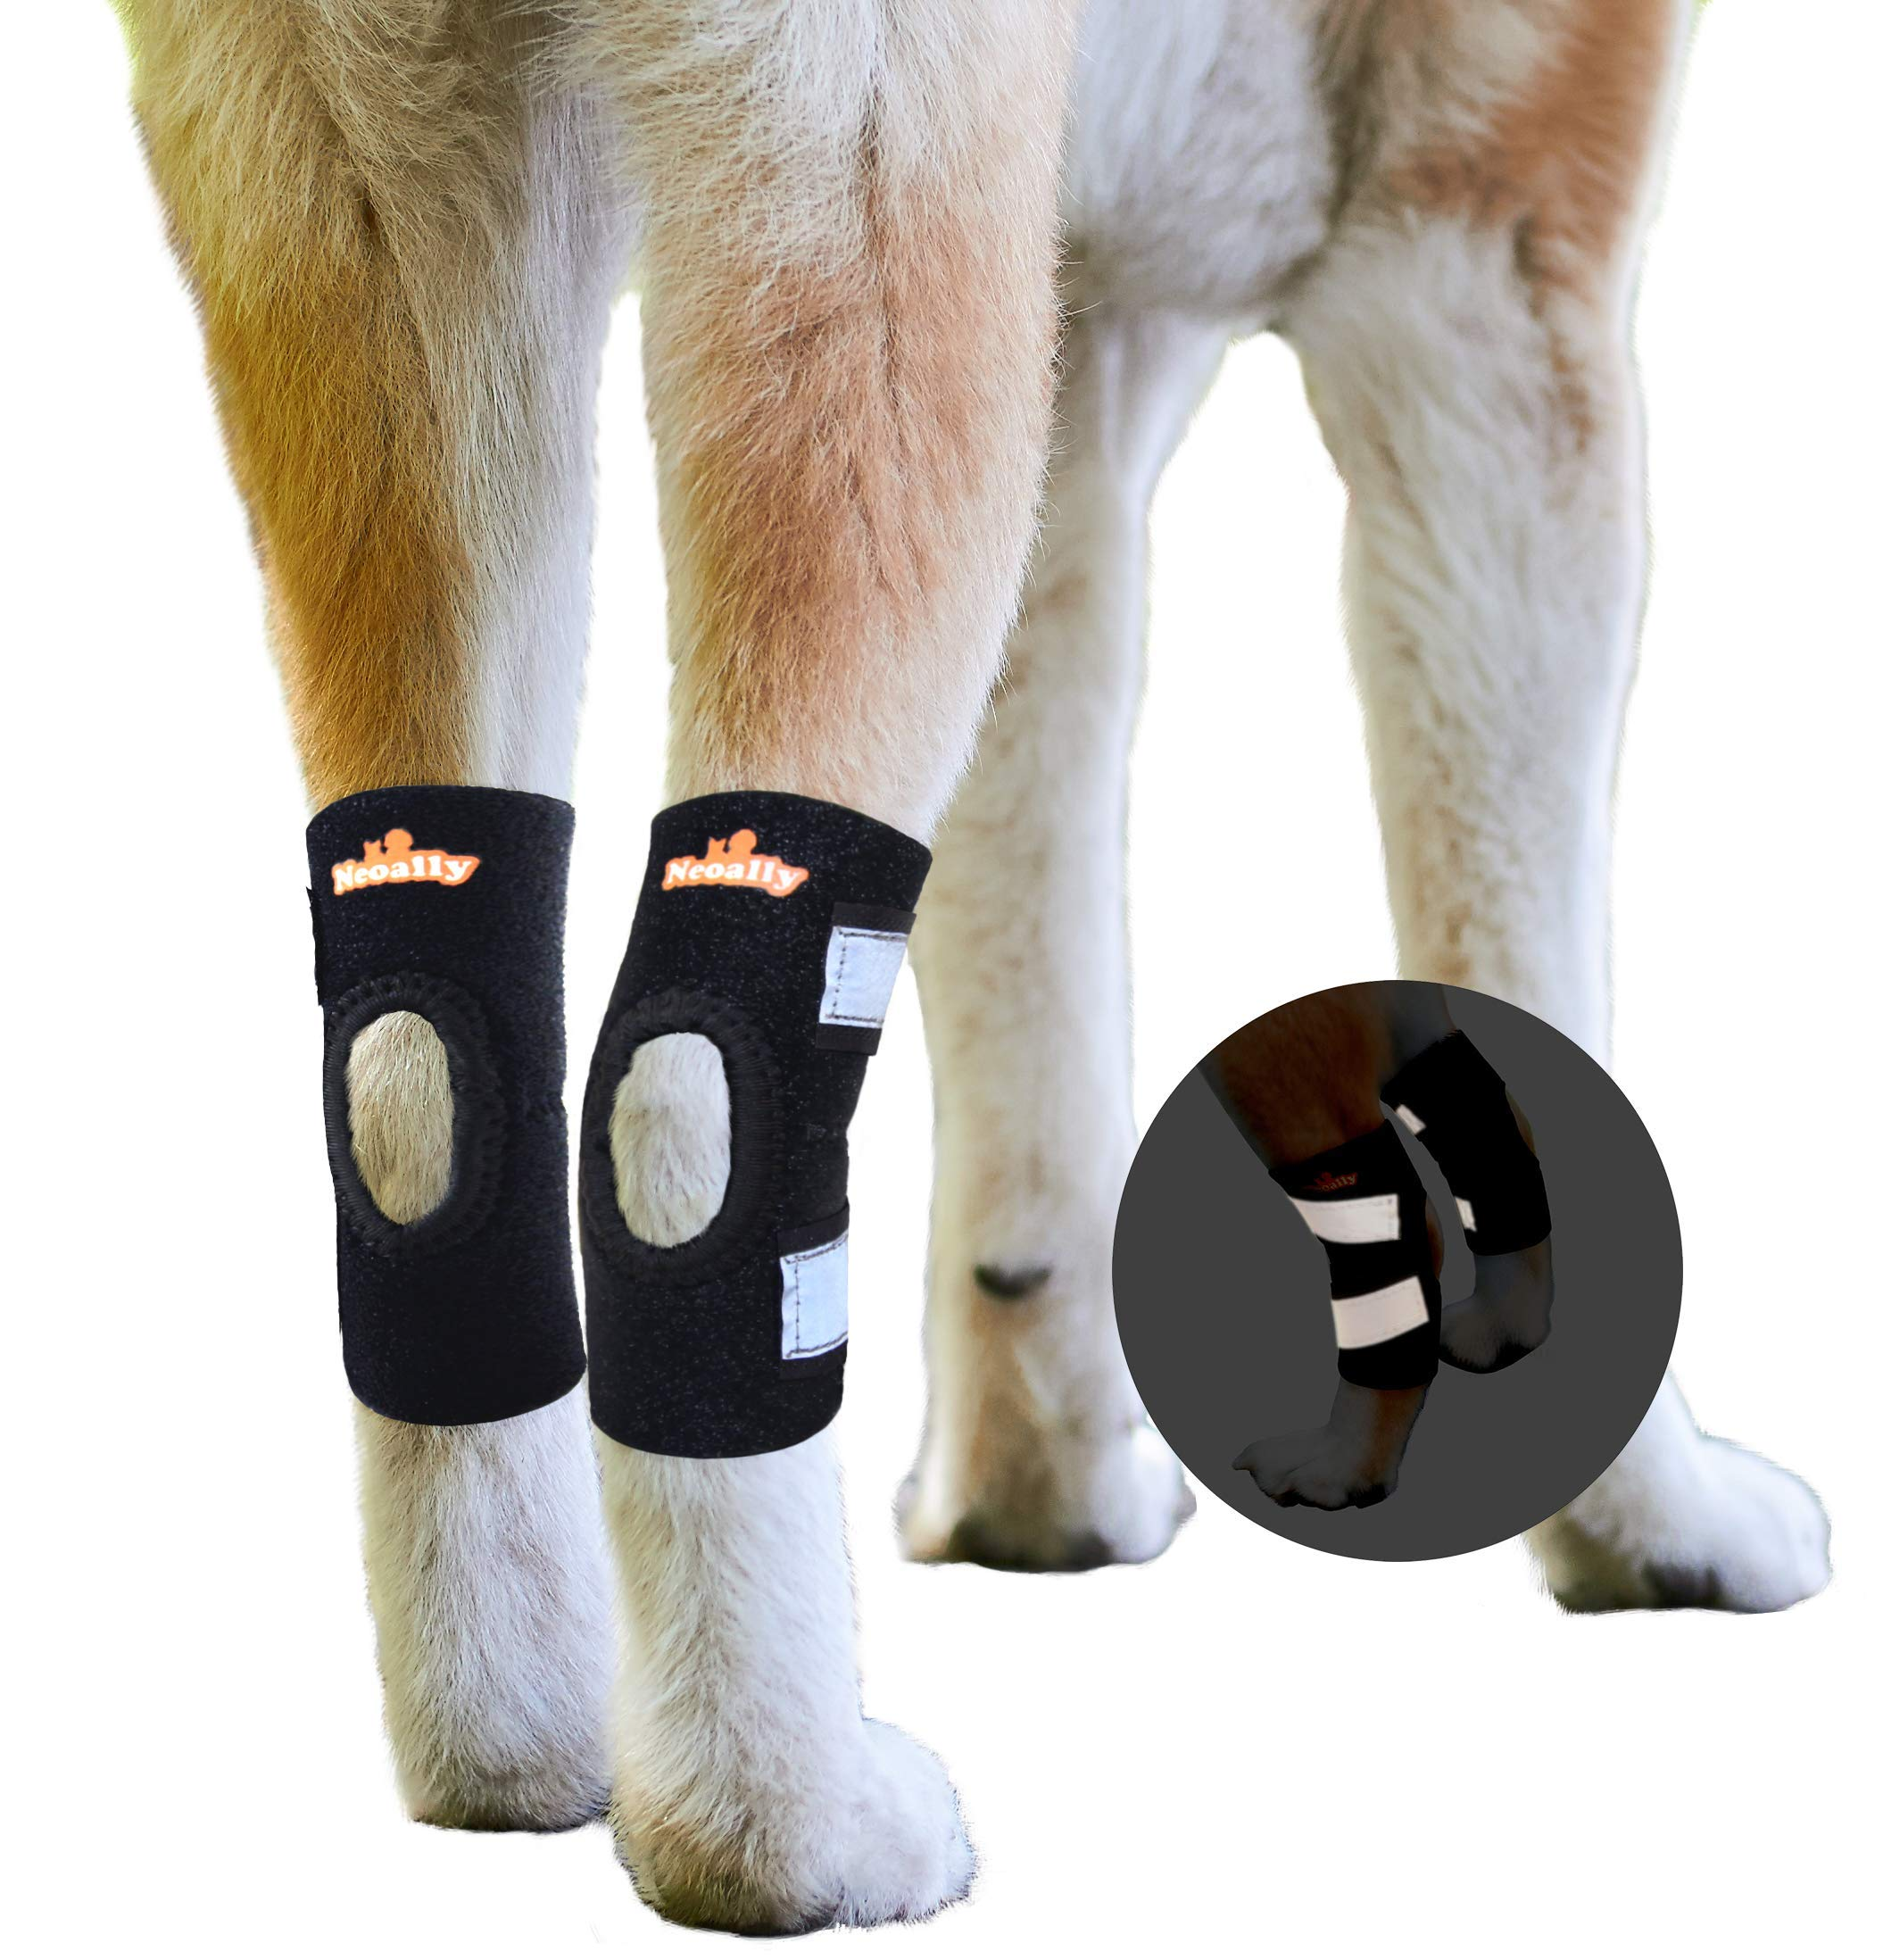 NeoAlly Dog Leg Brace [Short Version] for Small or Short Legs Canine Rear Hock Support with Safety Reflective Straps Hind Leg Wounds, Injuries and Sprains from Arthritis